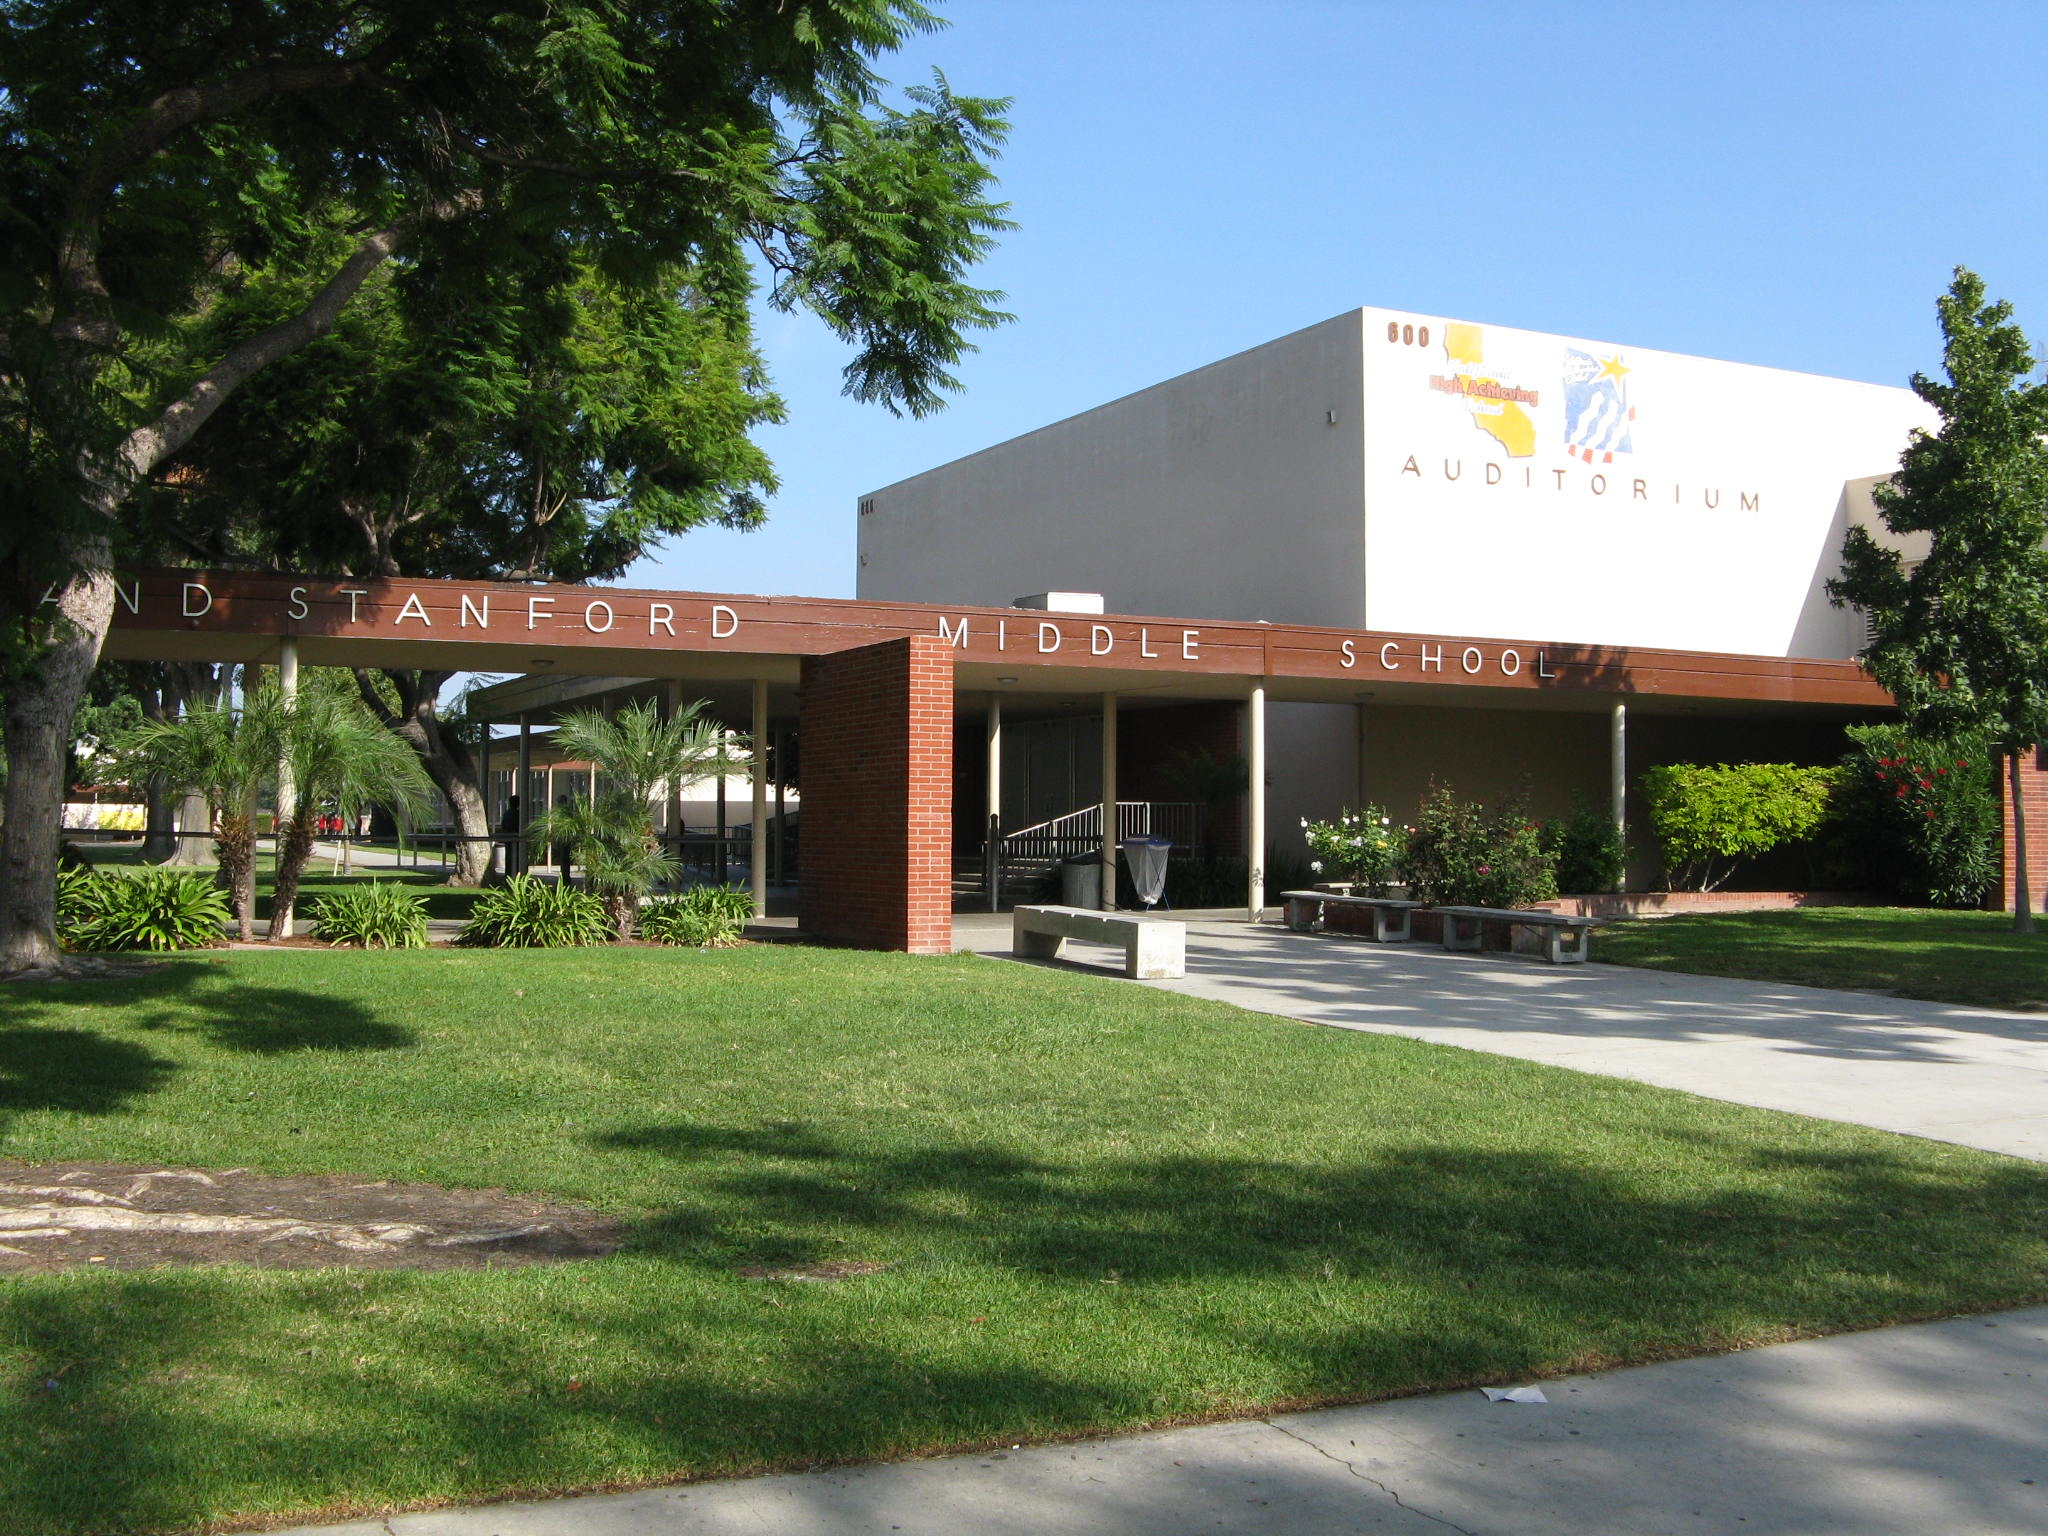 Schools and Home Value - Stanford Middle School in Long Beach, CA